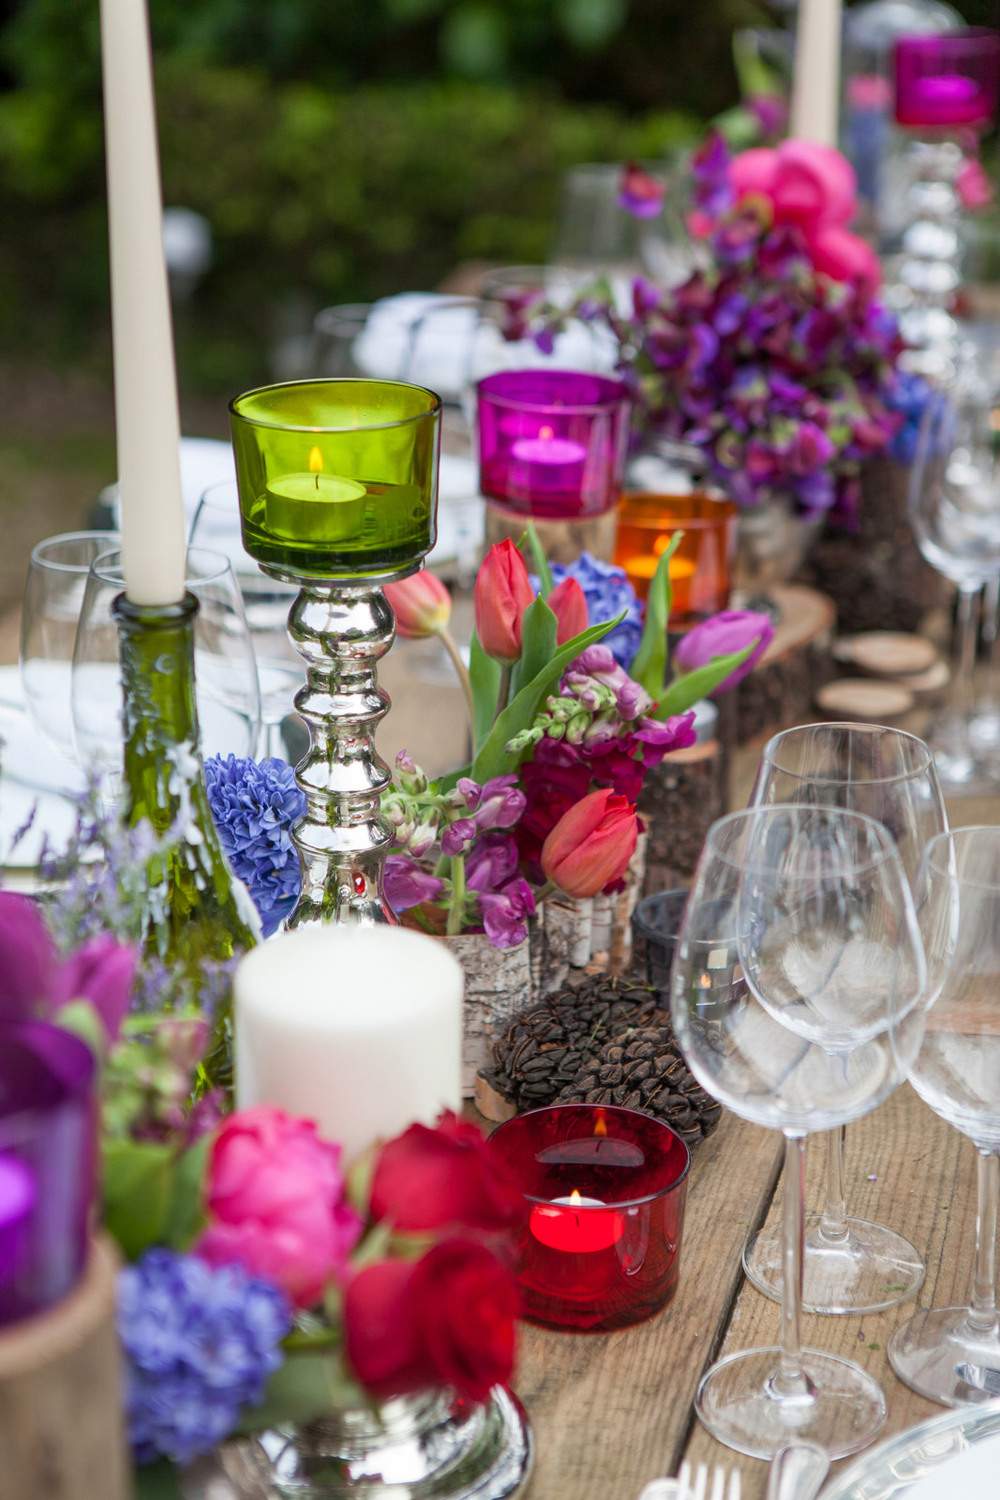 Colorful wedding table by The Wedding Portugal.jpg